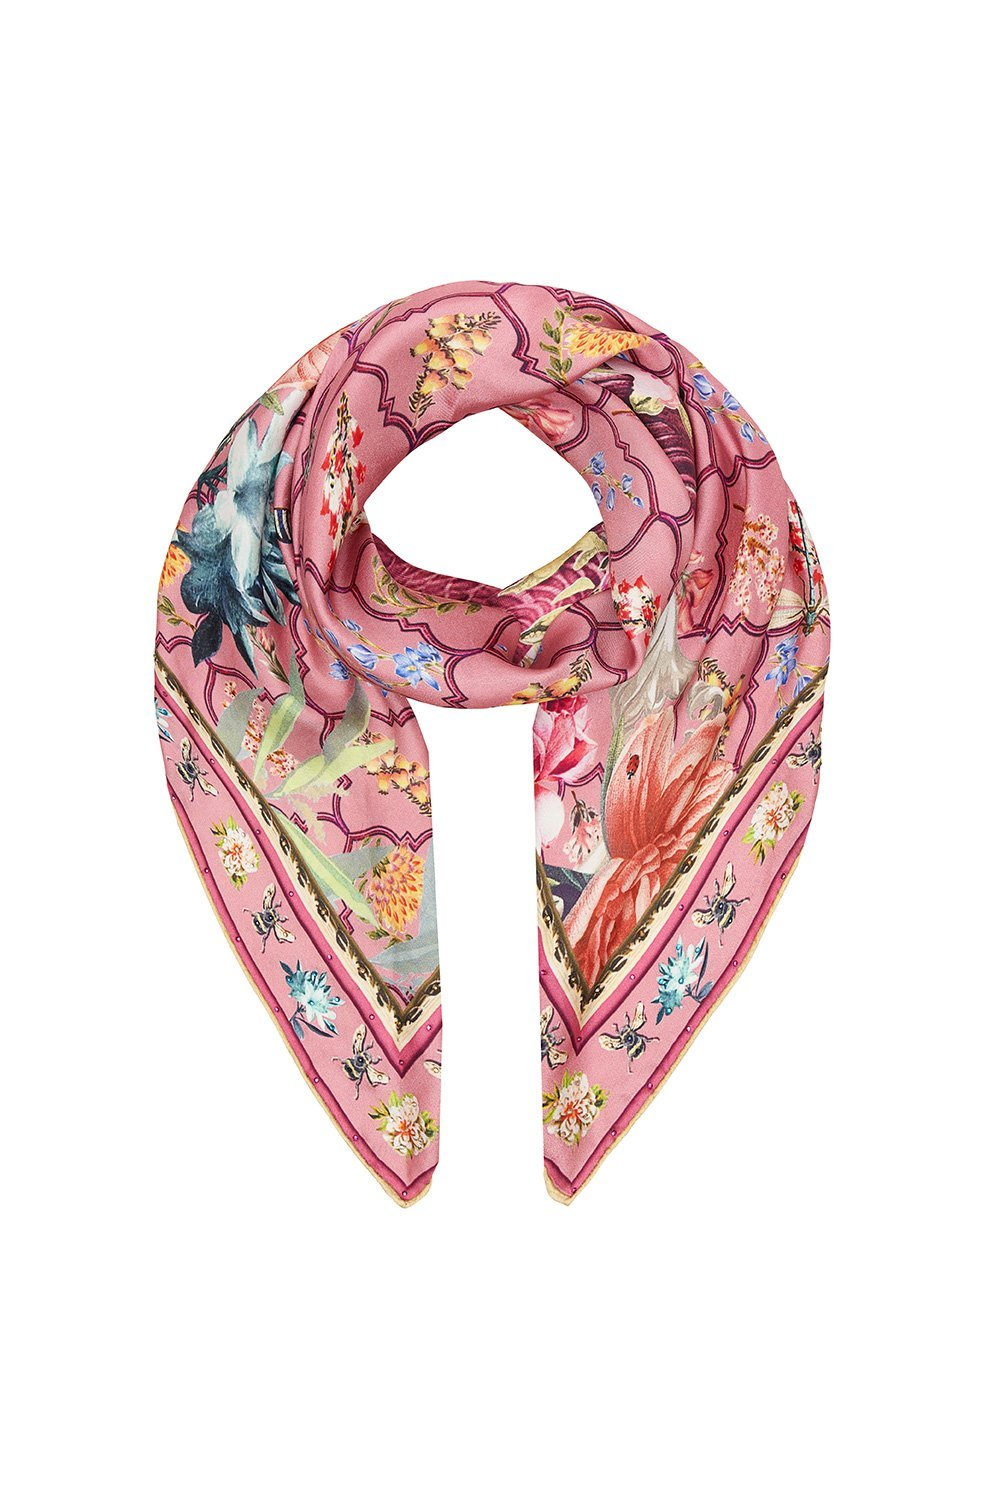 LARGE SQUARE SCARF PATCHWORK HEART